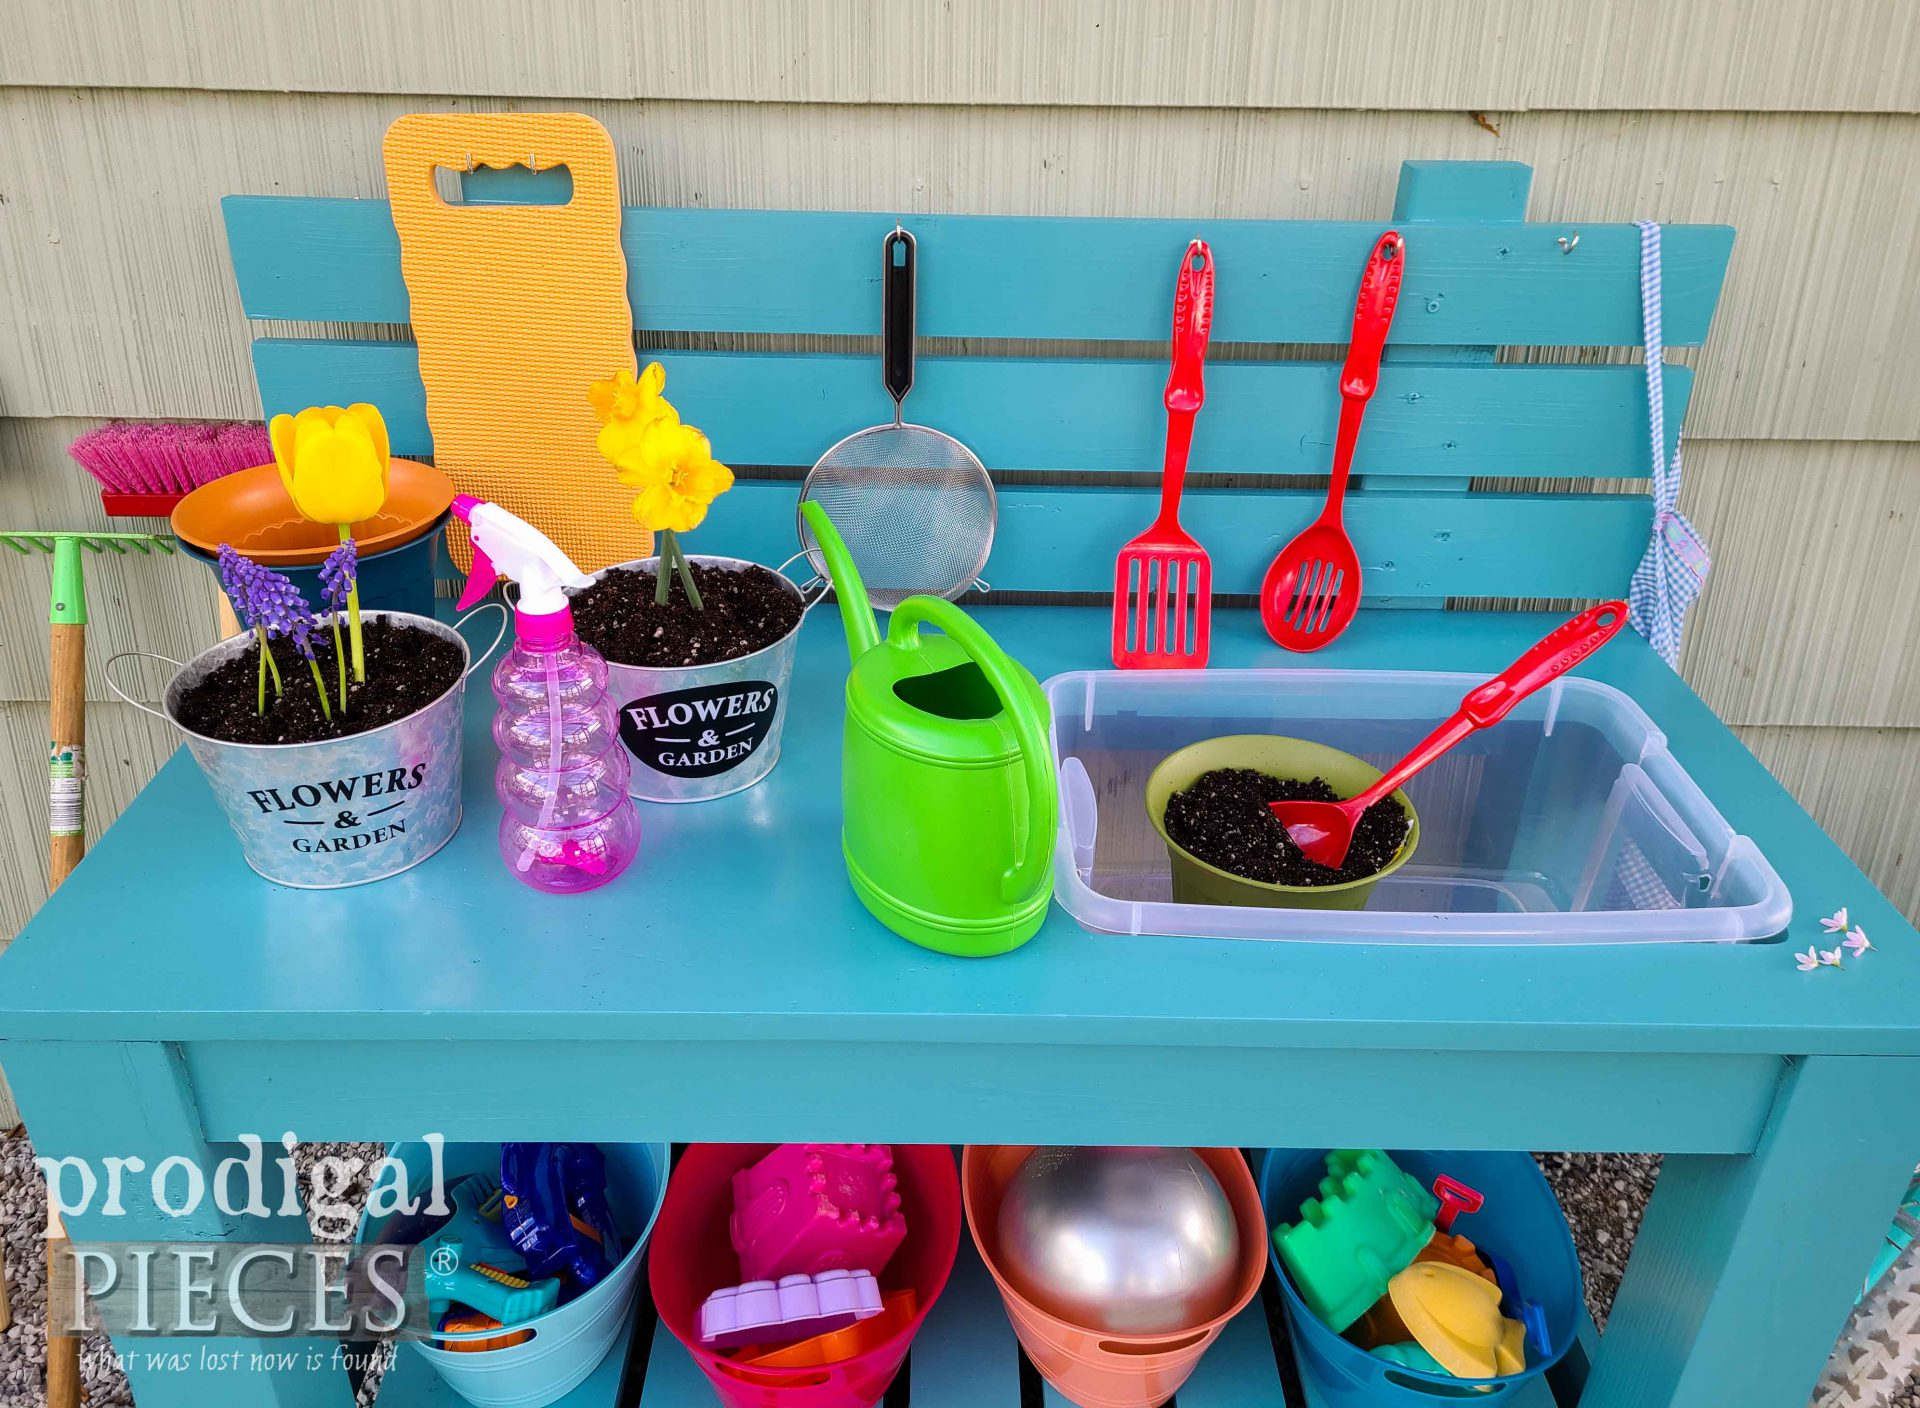 Upcycled Mud Bar Top with Fun Tools by Larissa & JC of Prodigal Pieces | prodigalpieces.com #prodigalpieces #upcycled #toys #garden #summer